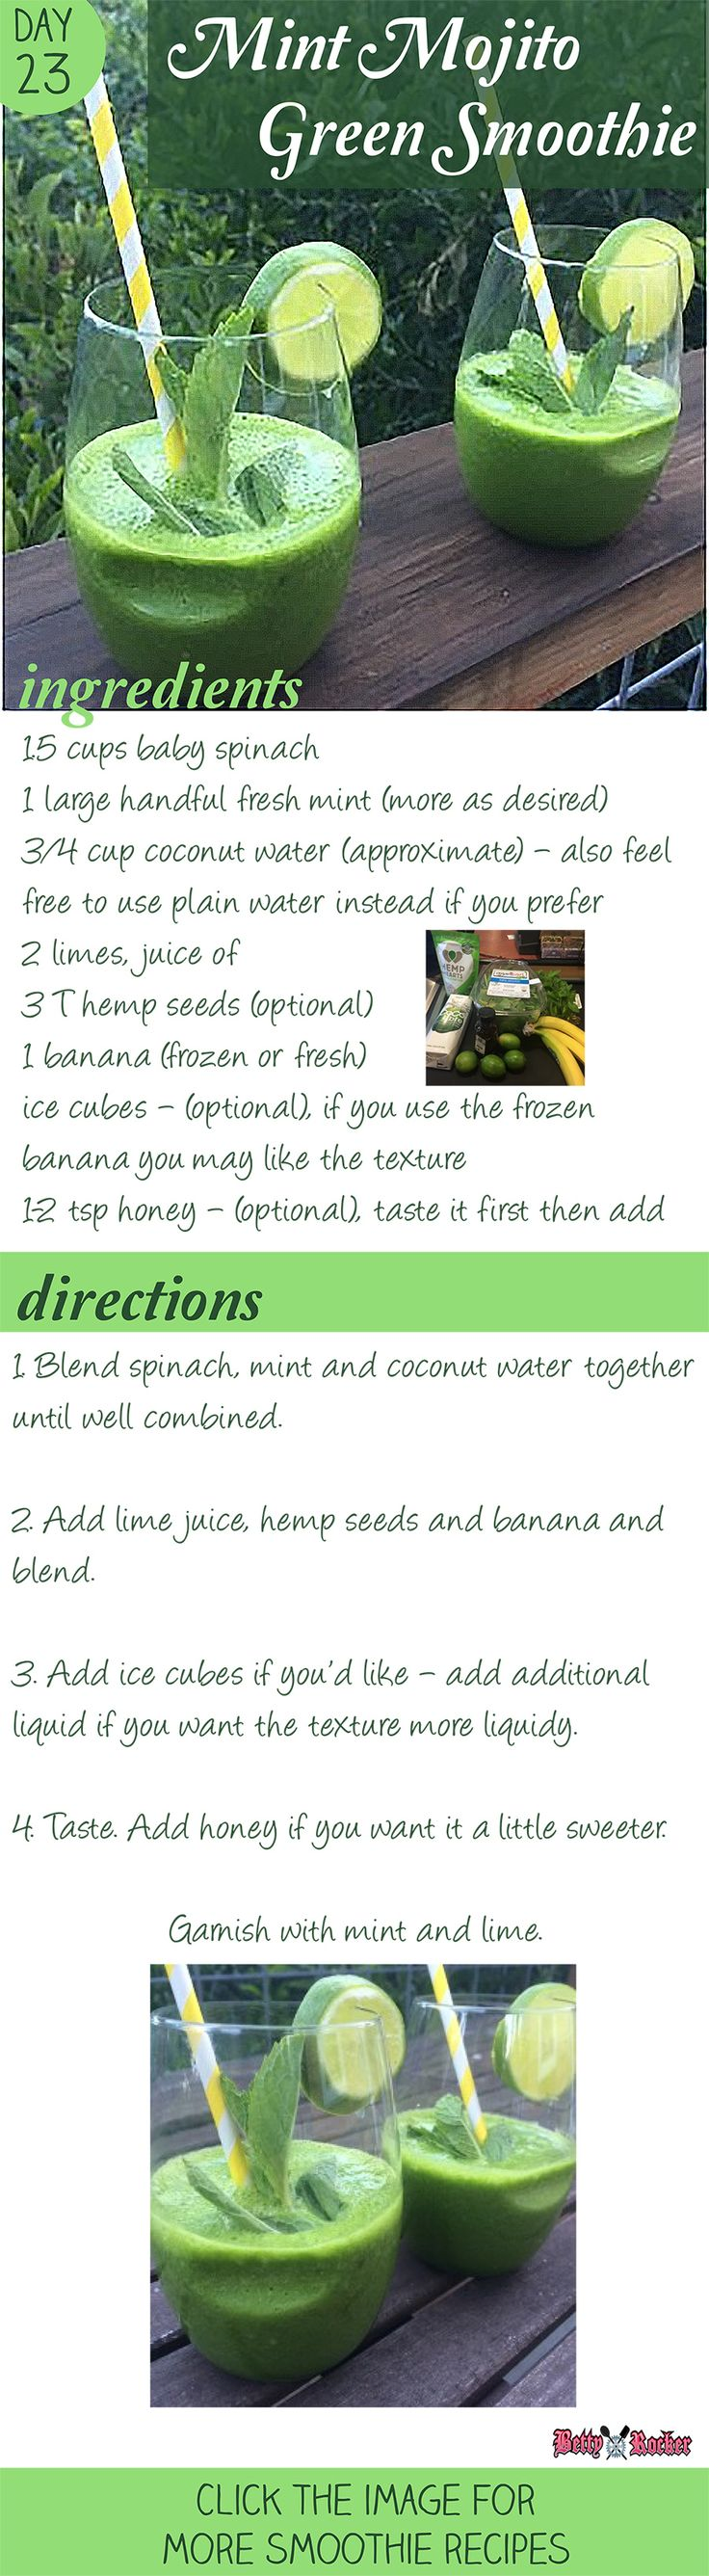 Recipe for Mint Mojito Green Smoothie on thebettyrocker.com